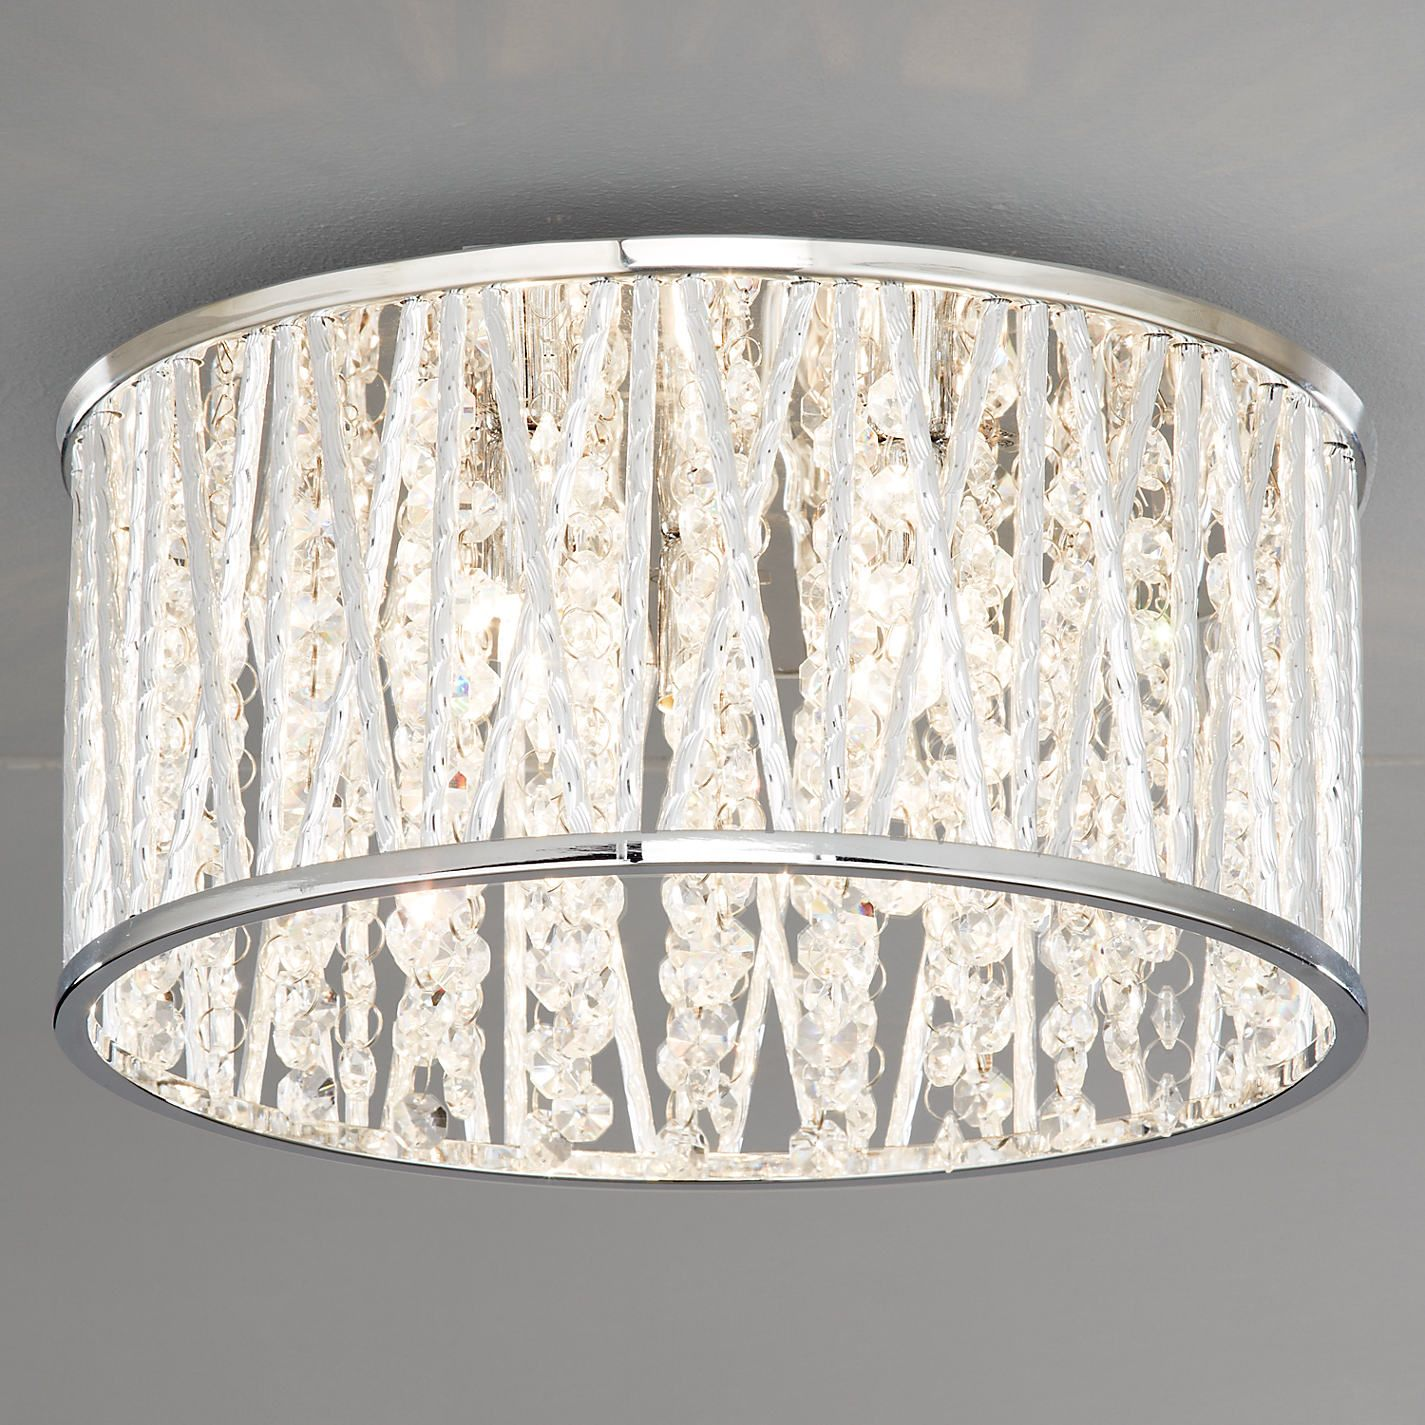 John Lewis Emilia Crystal Drum Flush Ceiling Light From Our Lighting Range At